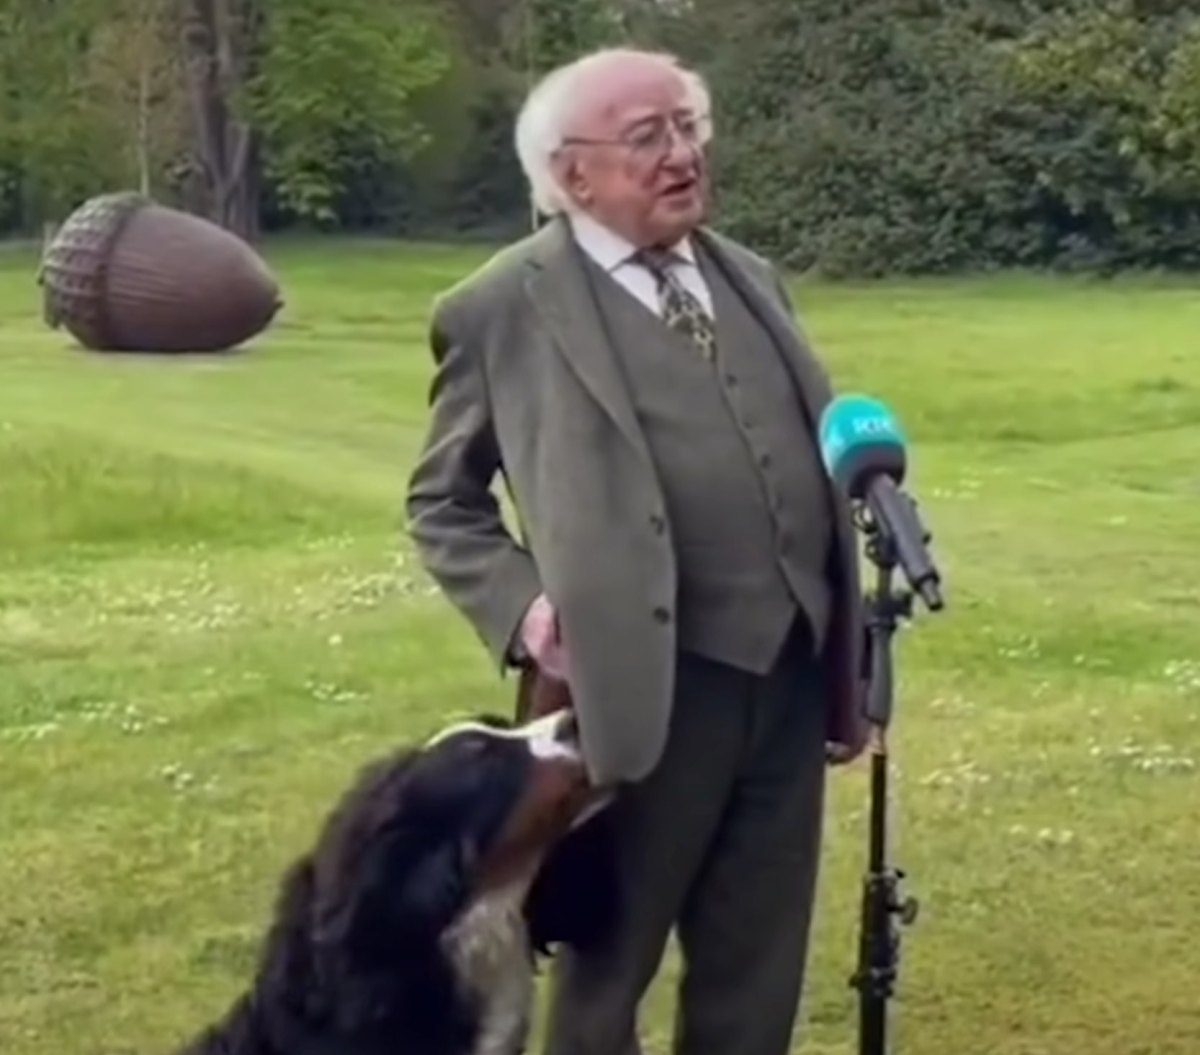 Ireland President's dog interrupts press conference with cuteness | Boing Boing